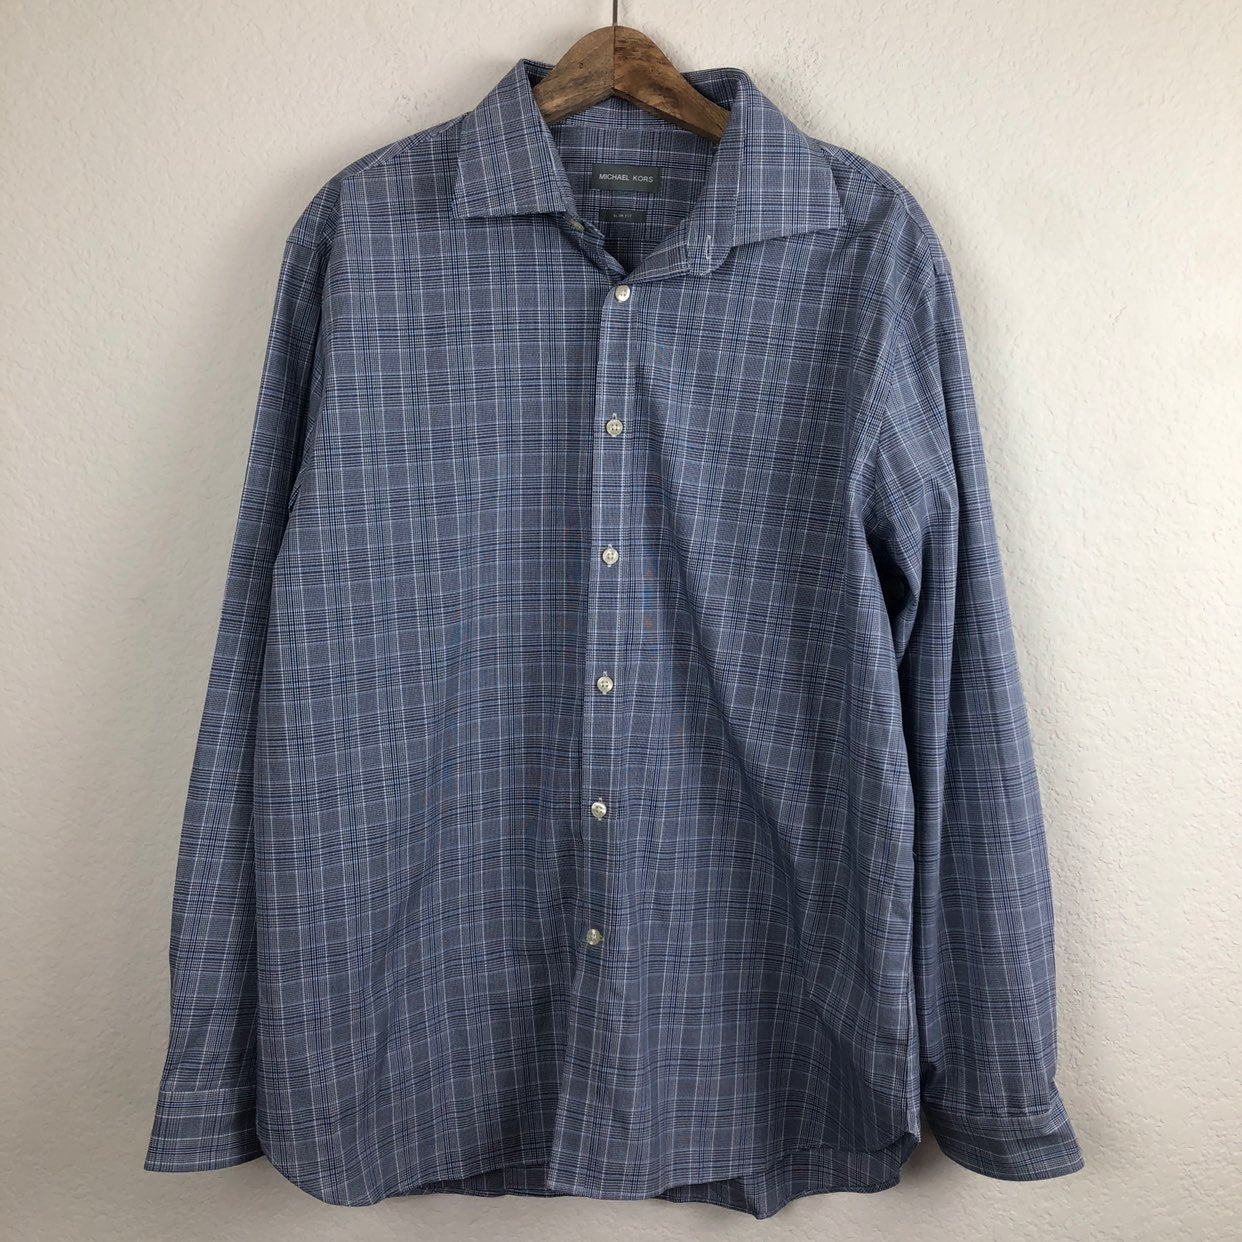 Michael Kors Slim Fit Button Down Shirt